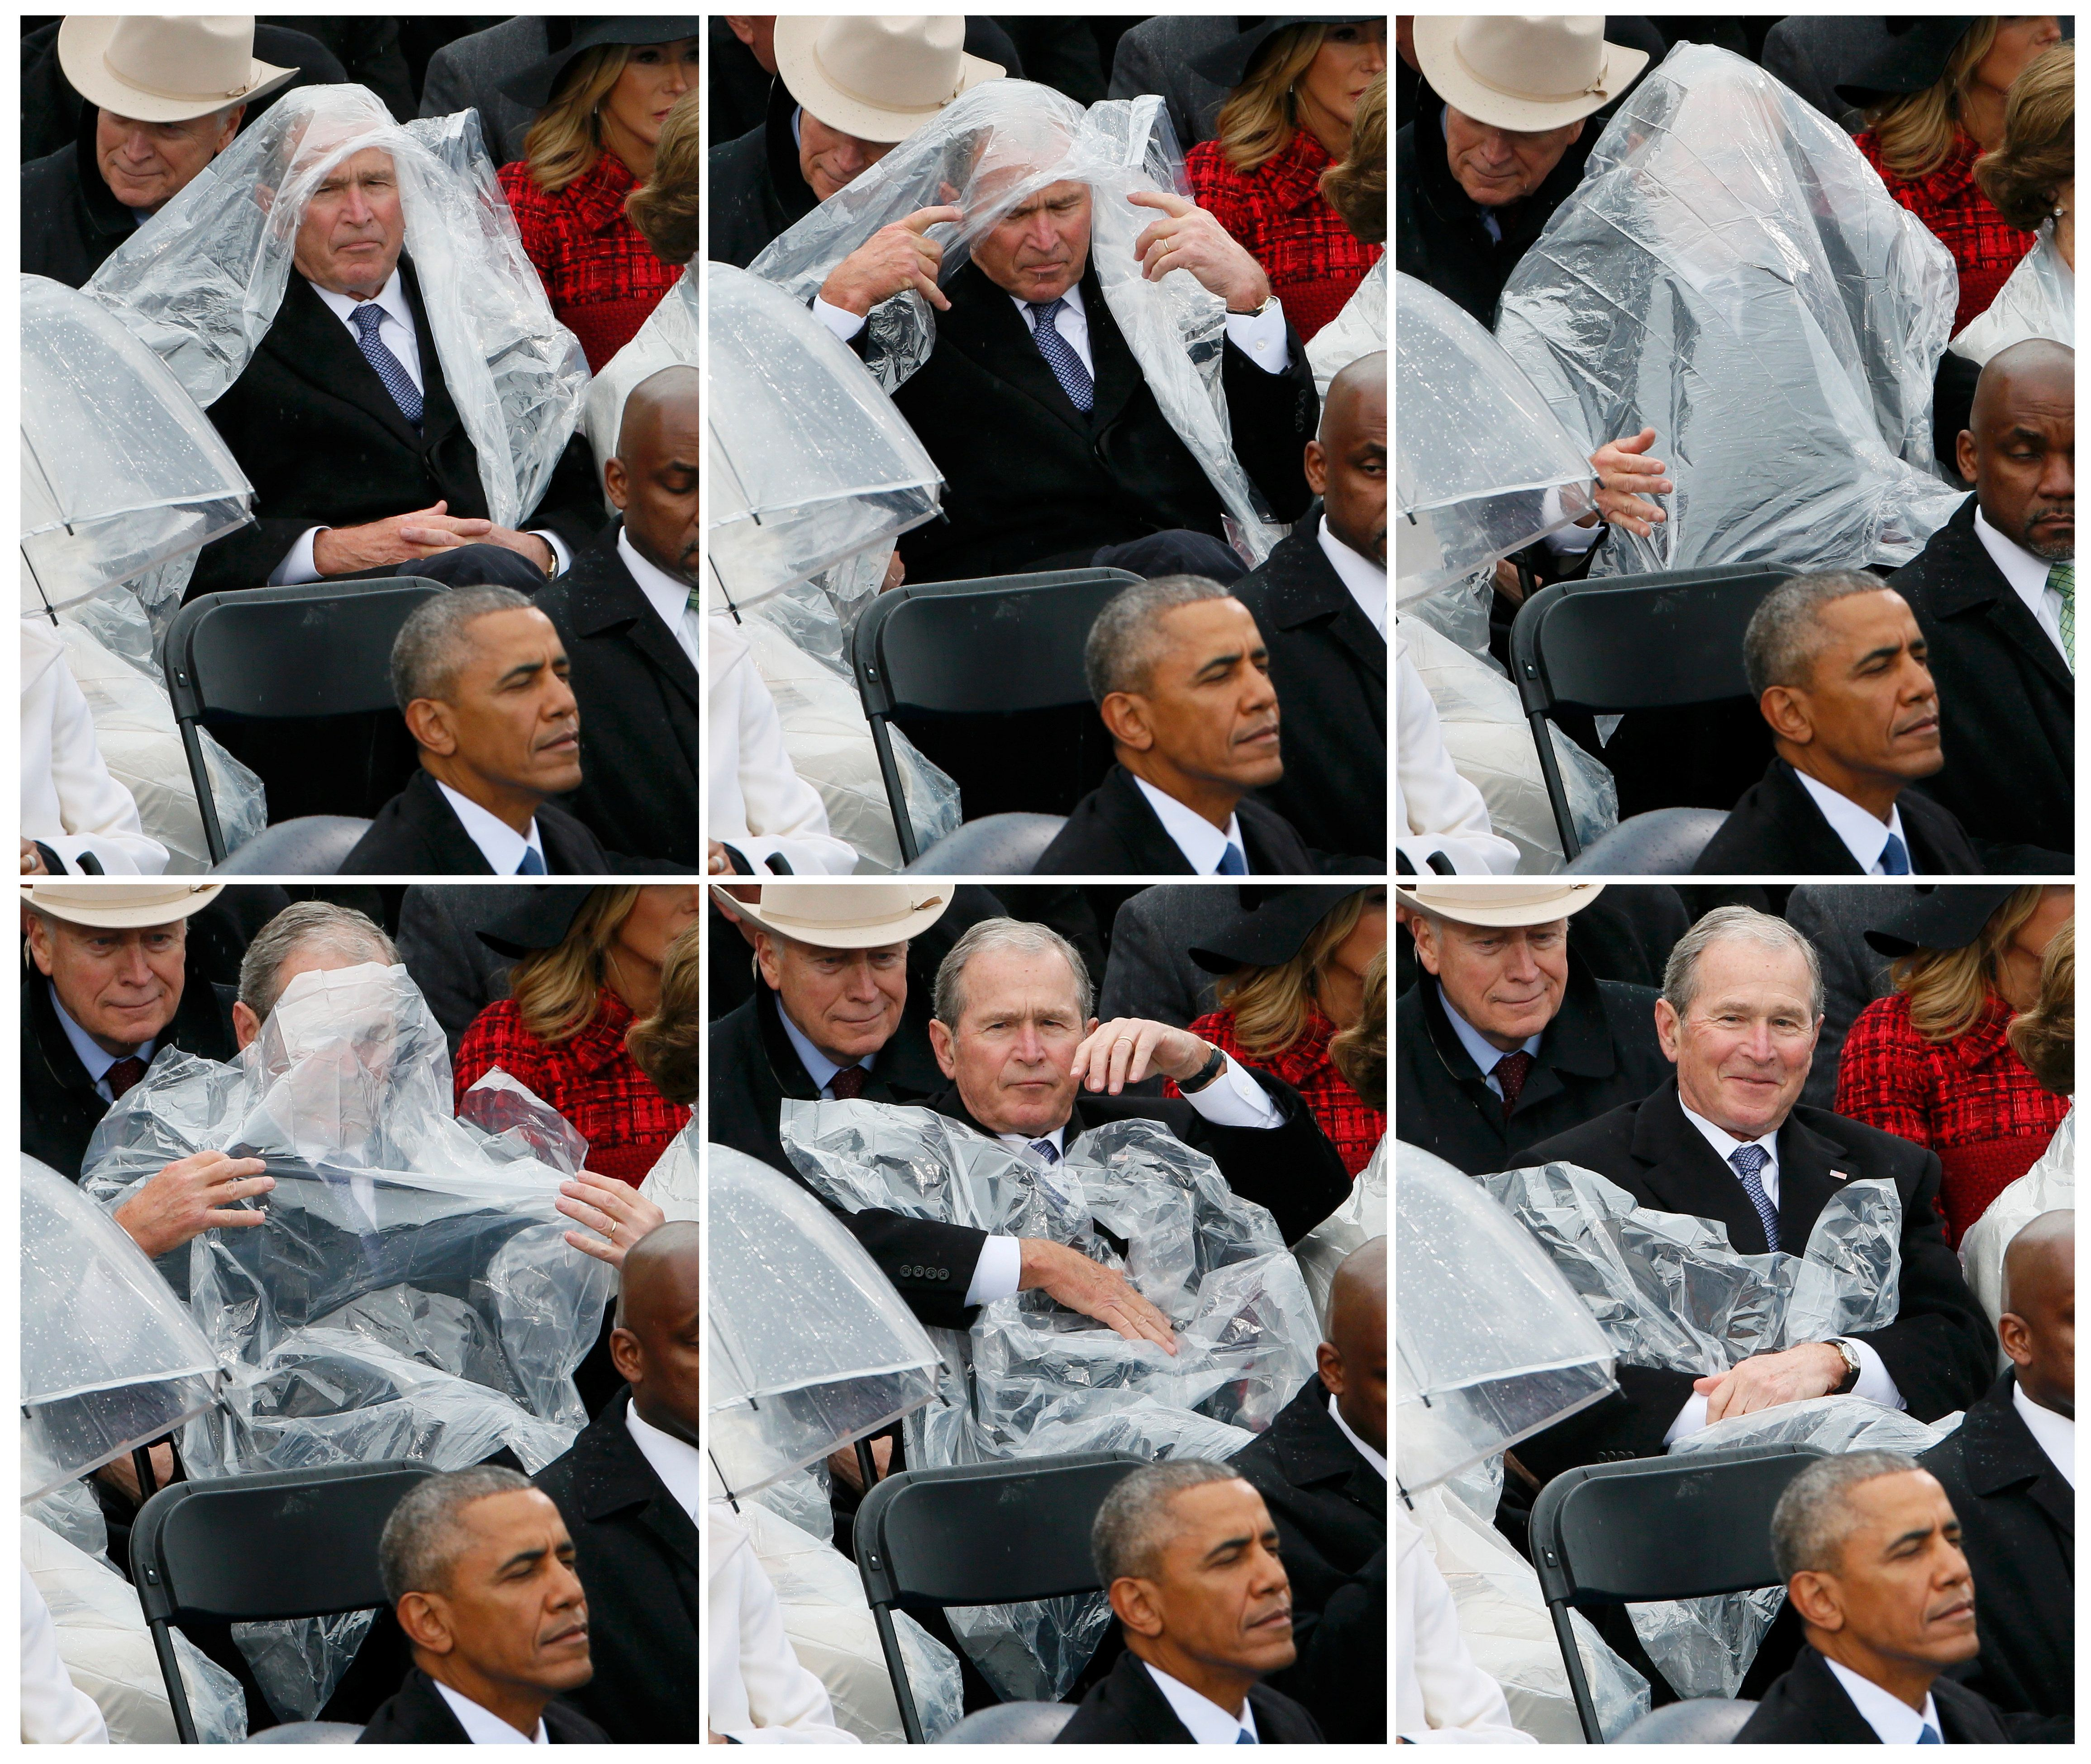 Redditors gave these images of former President George W. Bush using a plastic sheet to deal with the rain at President Donal